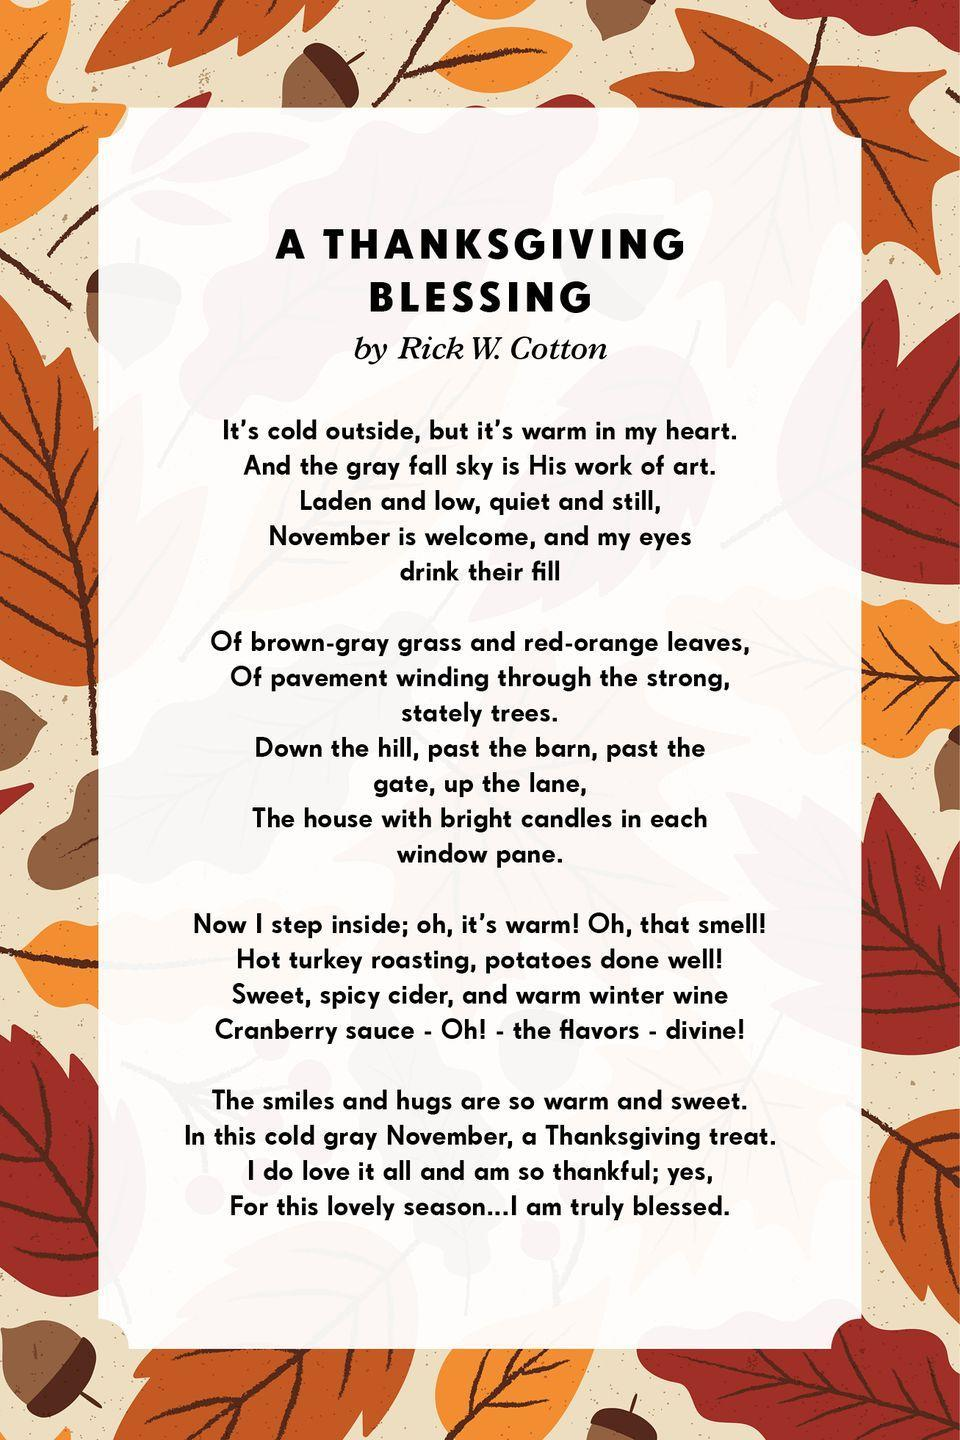 <p><strong>A Thanksgiving Blessing</strong></p><p>It's cold outside, but it's warm in my heart.<br>And the gray fall sky is His work of art.<br>Laden and low, quiet and still,<br>November is welcome, and my eyes drink their fill<br><br>Of brown-gray grass and red-orange leaves,<br>Of pavement winding through the strong, stately trees.<br>Down the hill, past the barn, past the gate, up the lane,<br>The house with bright candles in each window pane.<br><br>Now I step inside; oh, it's warm! Oh, that smell!<br>Hot turkey roasting, potatoes done well!<br>Sweet, spicy cider, and warm winter wine<br>Cranberry sauce - Oh! - the flavors - divine!<br><br>The smiles and hugs are so warm and sweet.<br>In this cold gray November, a Thanksgiving treat.<br>I do love it all and am so thankful; yes,<br>For this lovely season...I am truly blessed.</p>